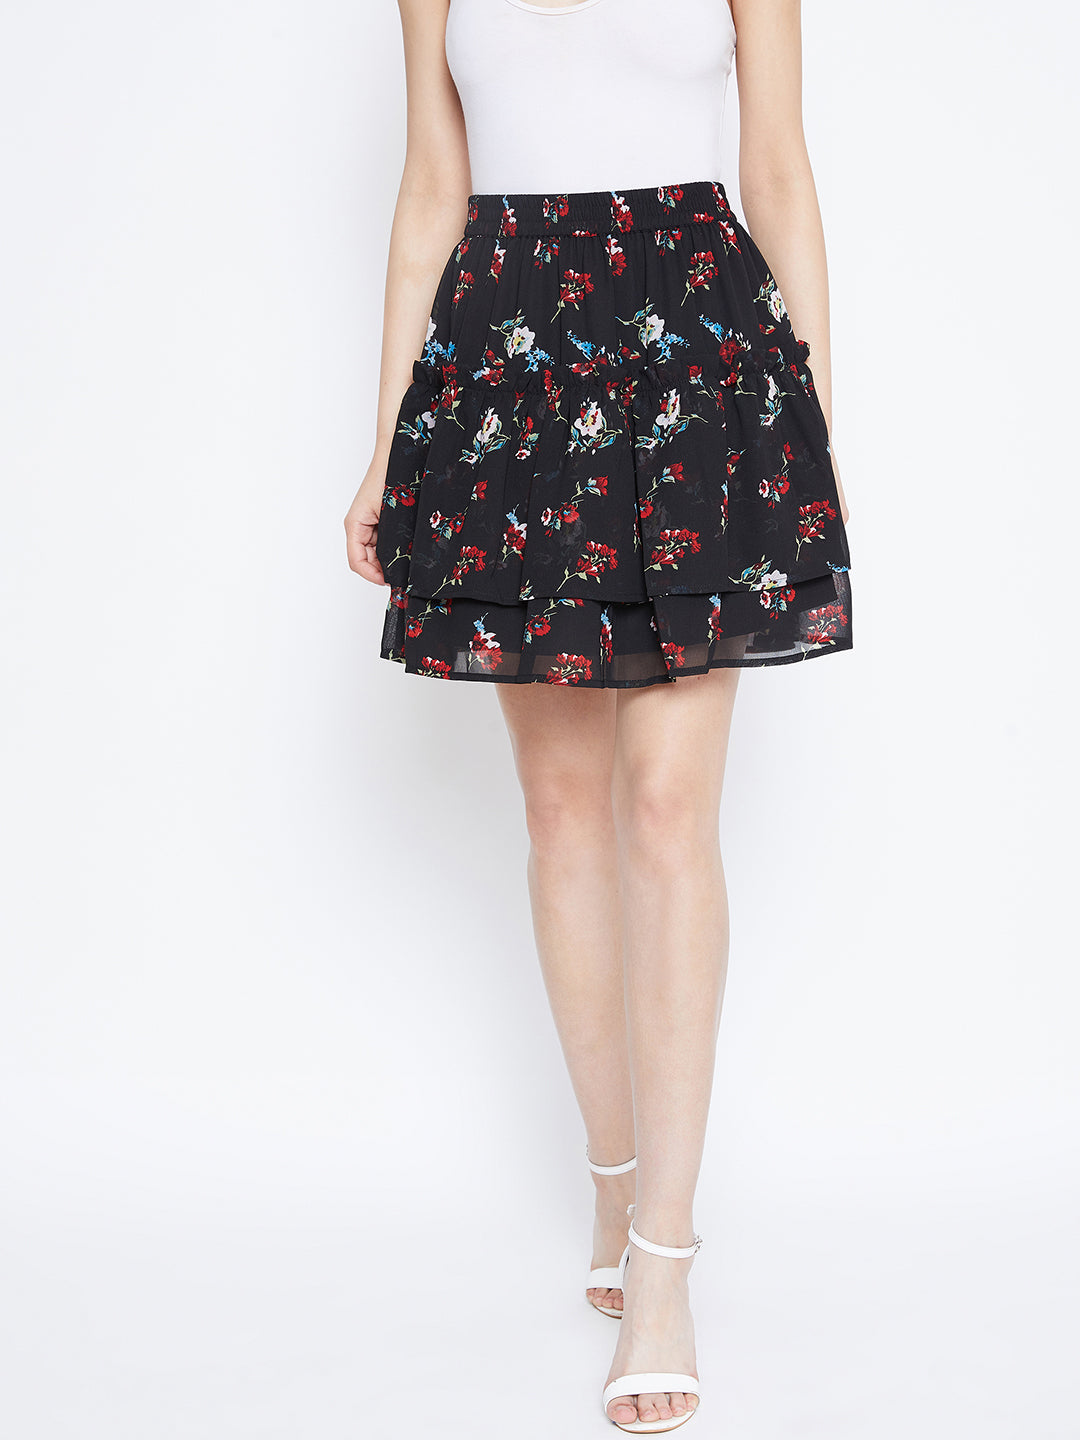 Berrylush Black and Red Layered Floral skirt